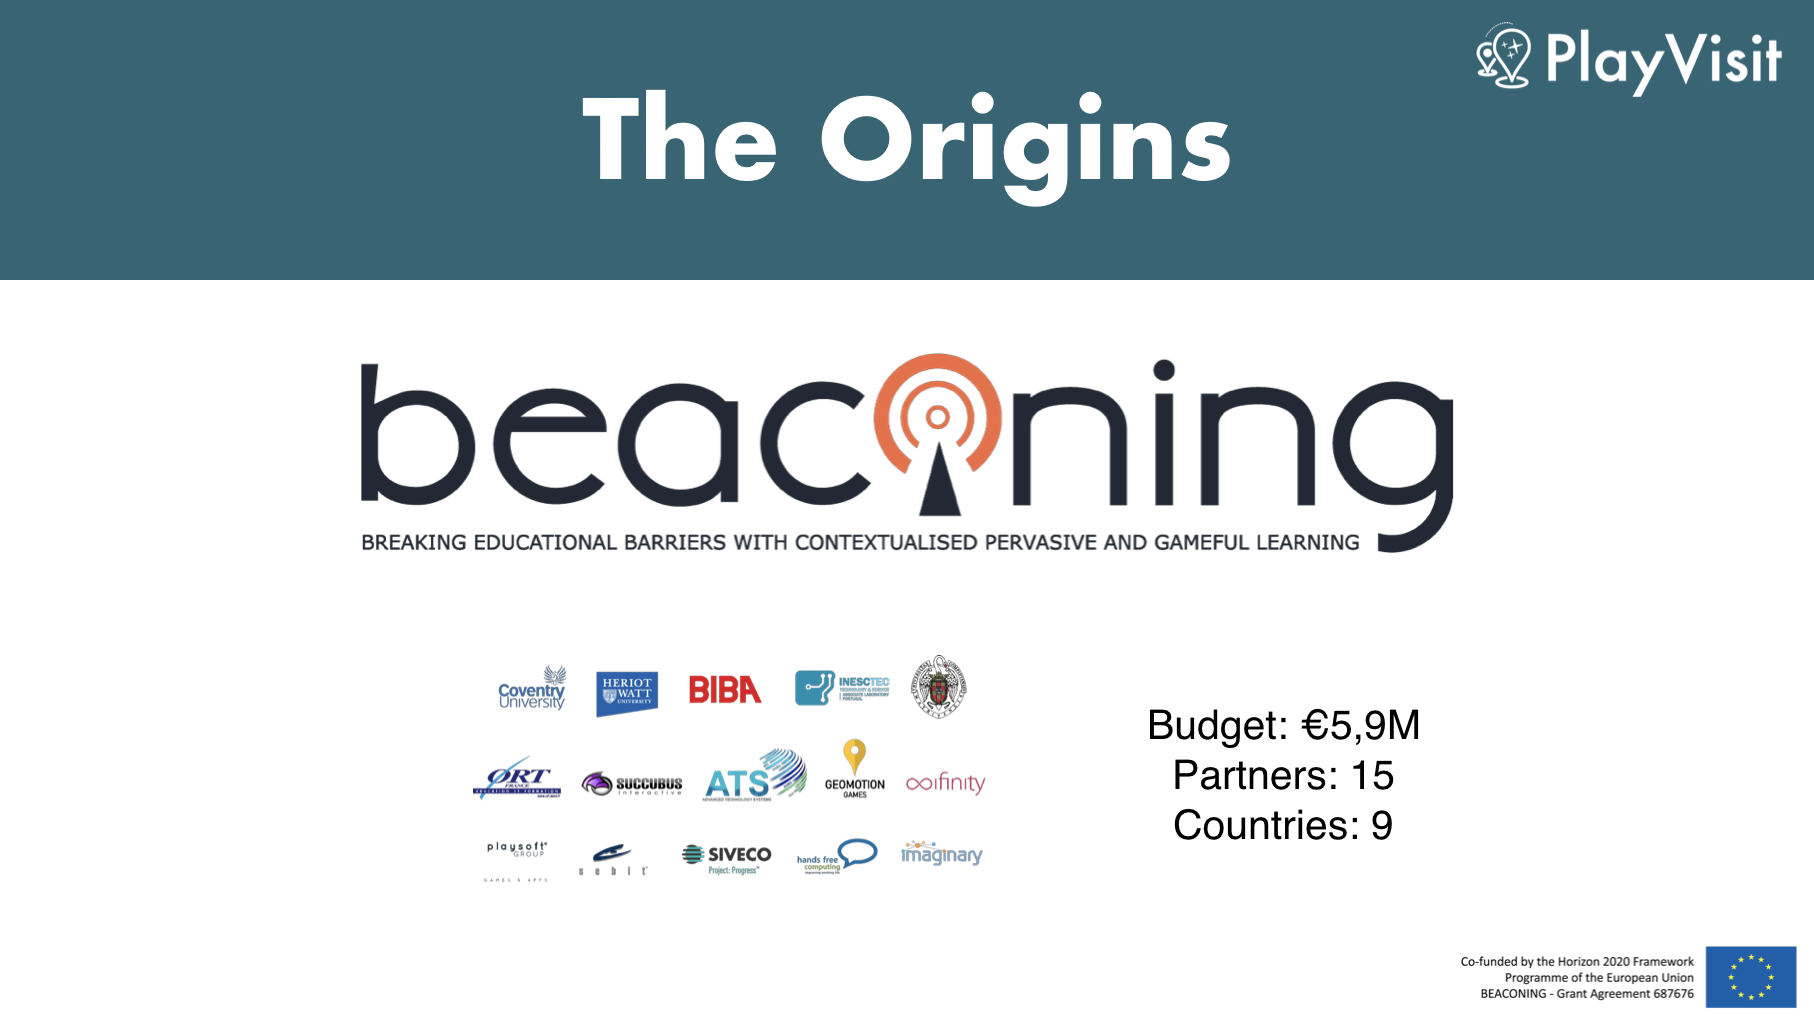 Beaconing-PlayVisit-Tourism-Culture-Heritage